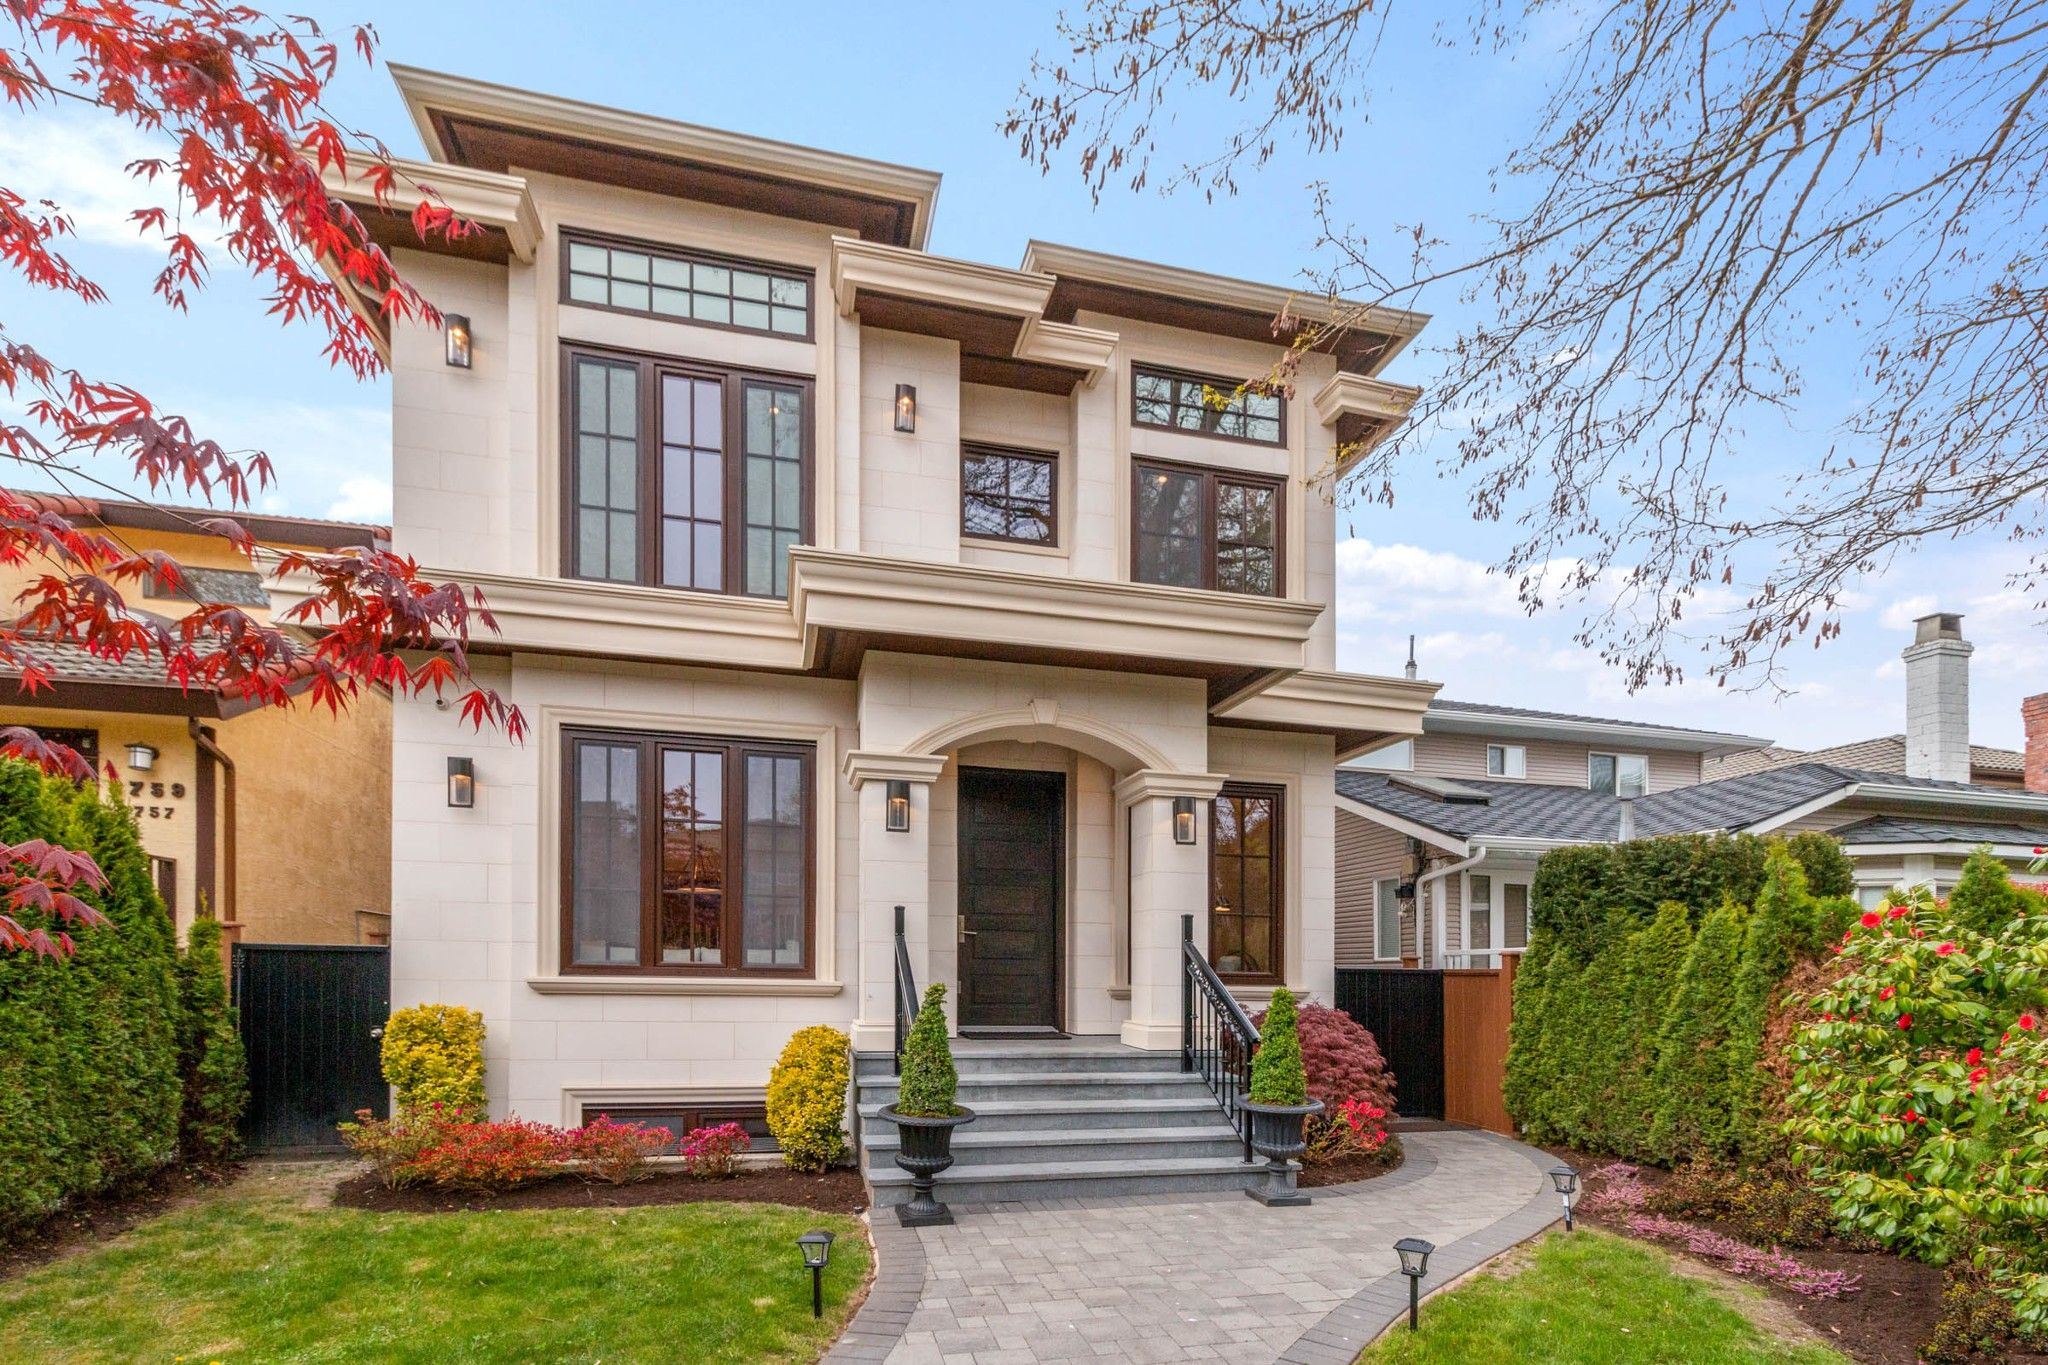 Main Photo: 3739 W 24TH Avenue in Vancouver: Dunbar House for sale (Vancouver West)  : MLS®# R2573039